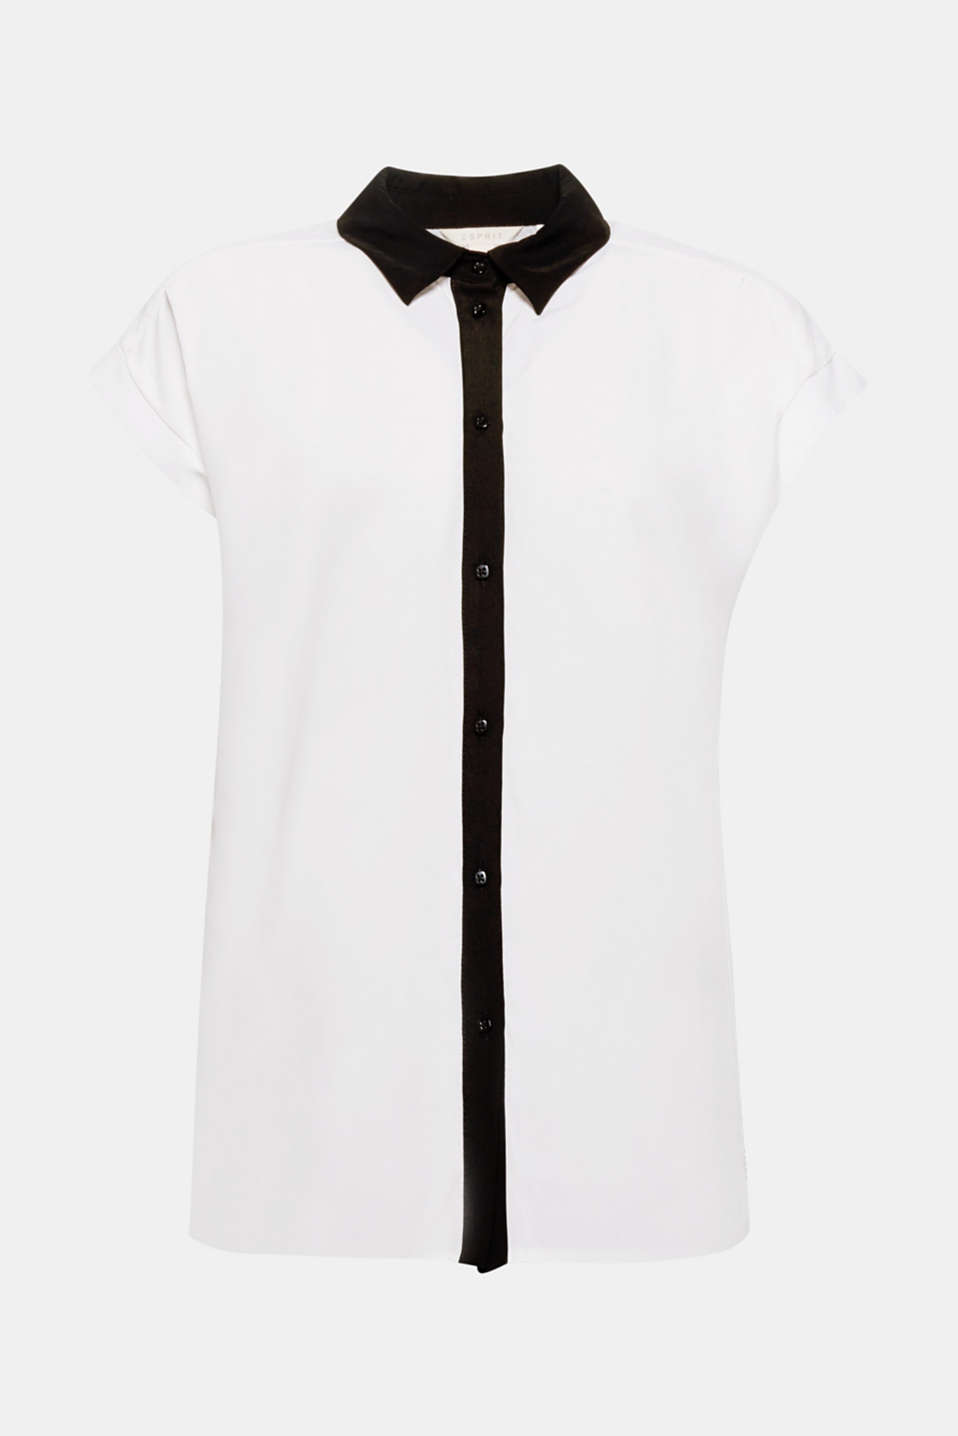 We love black and white! This casual blouse impressed with its striking collar and button placket in a contrasting colour.